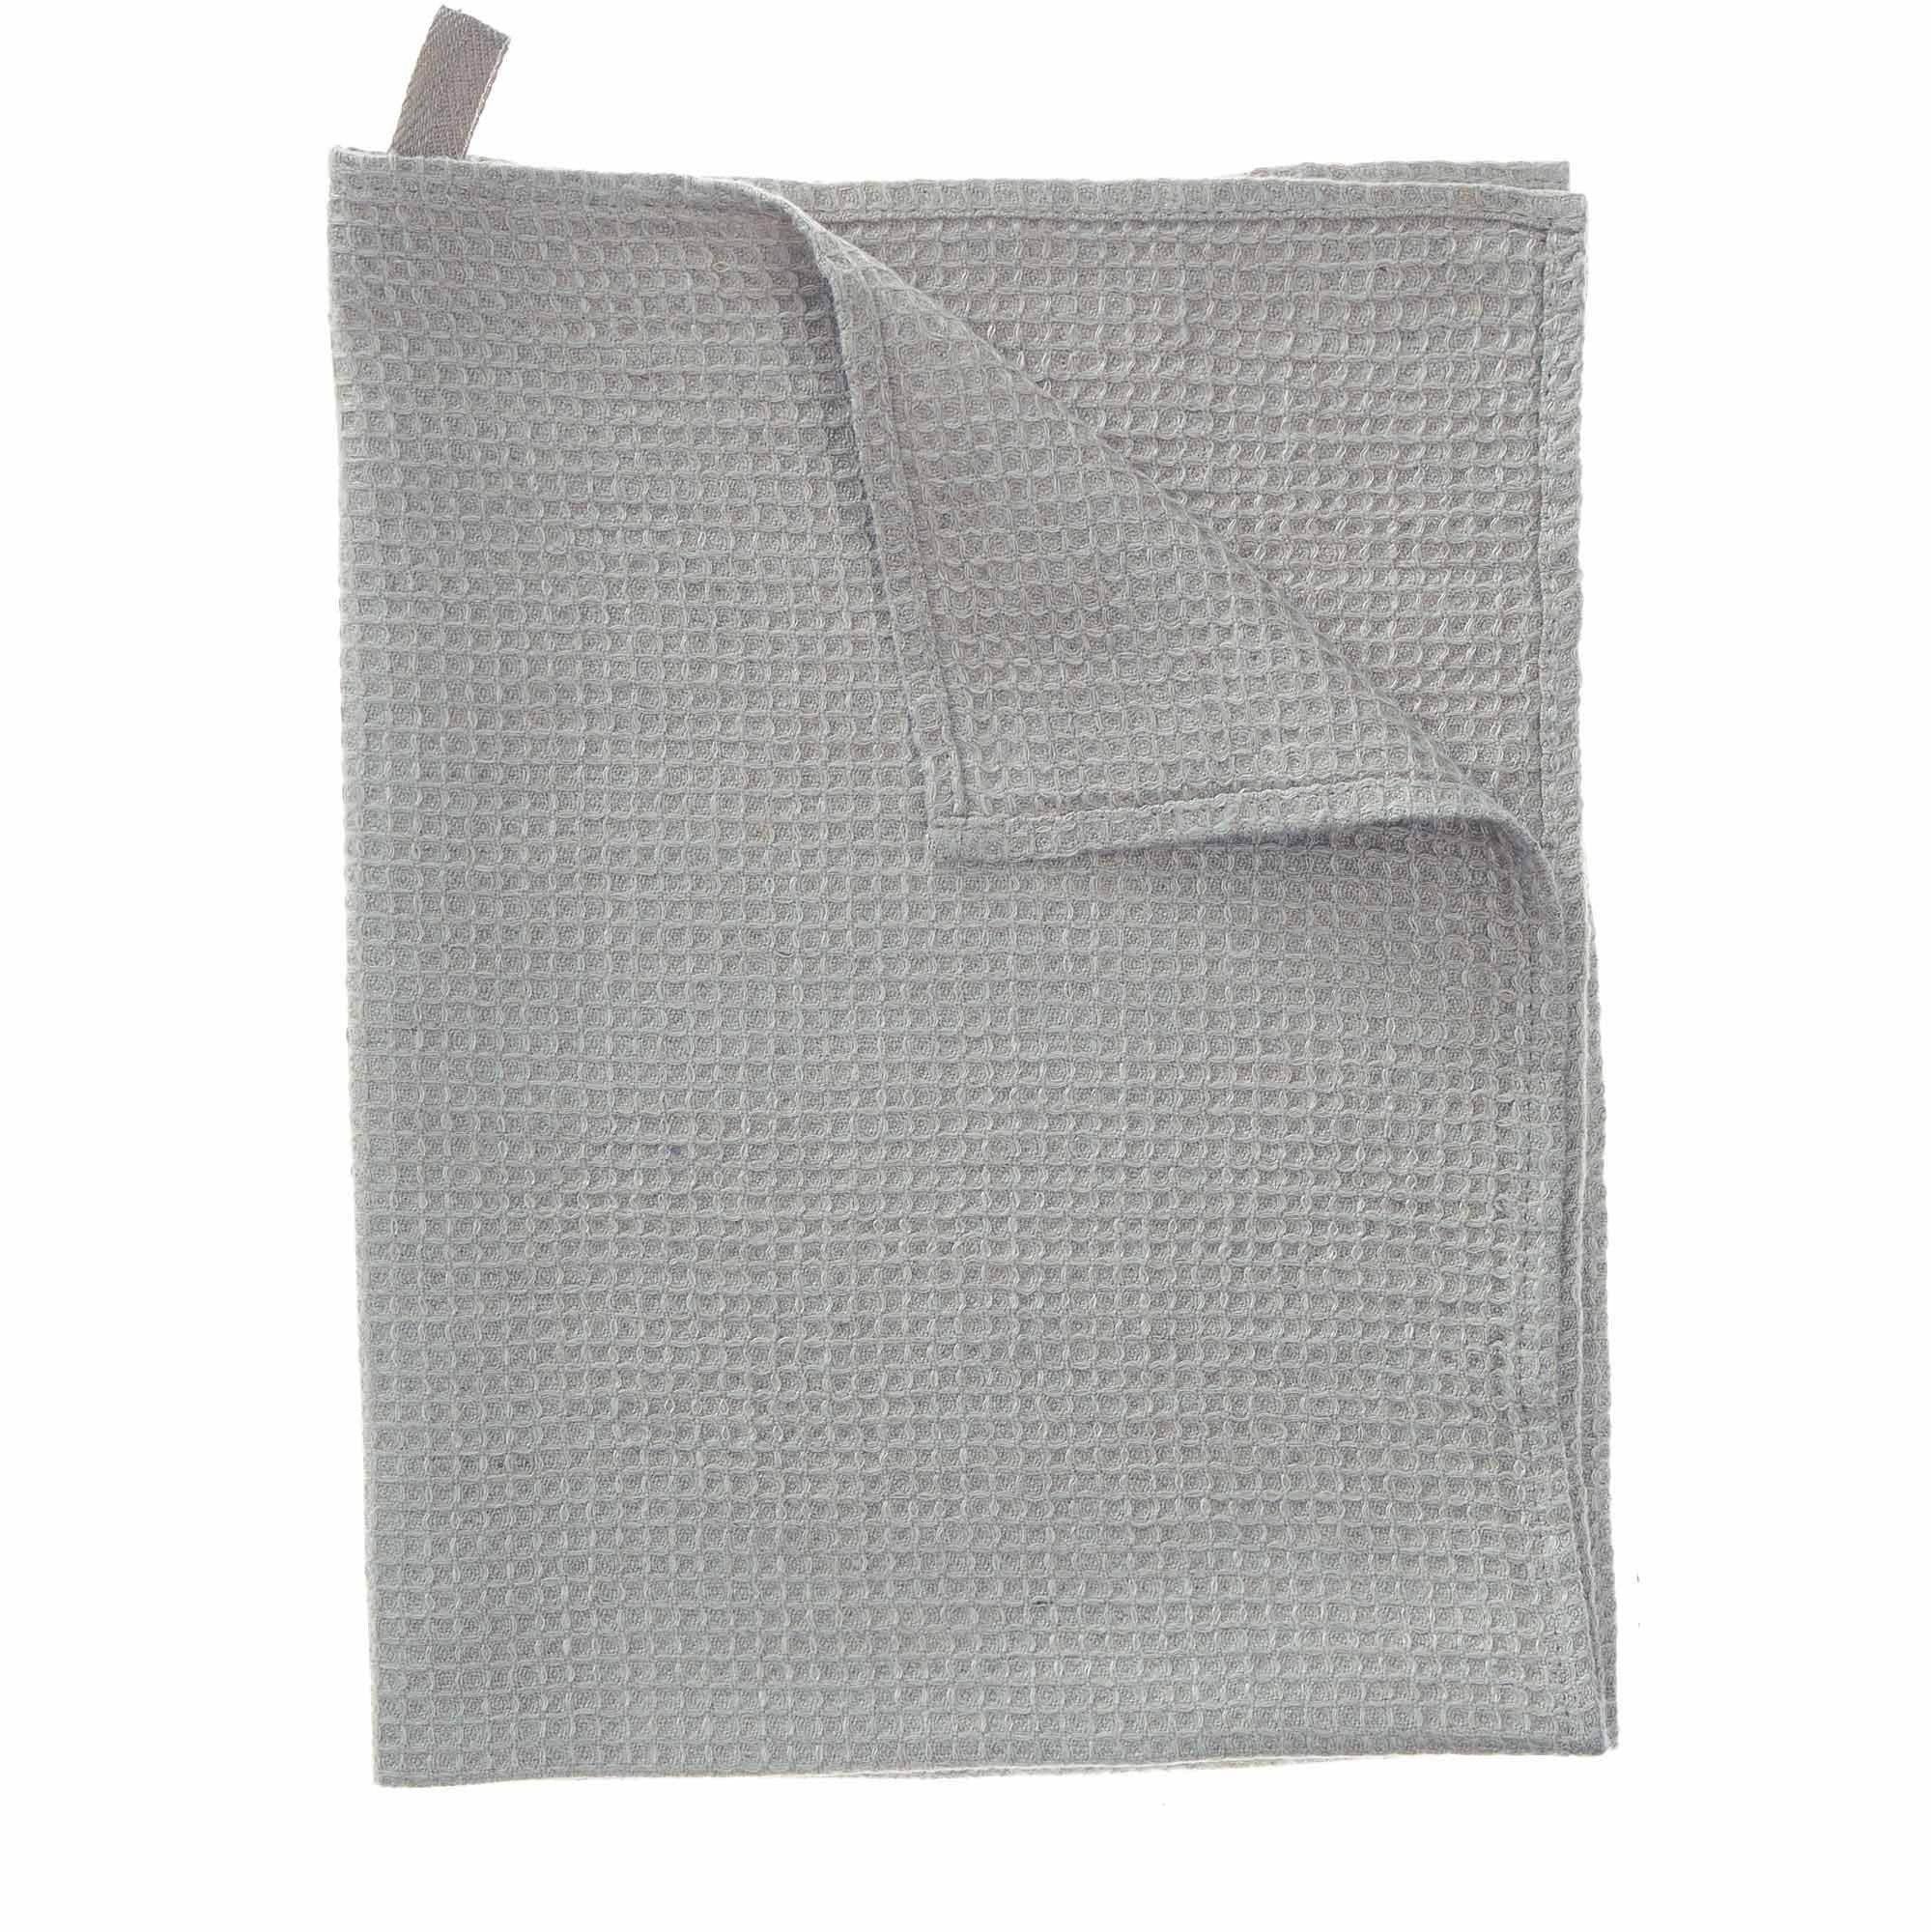 Meeris tea towel, light grey, 100% linen